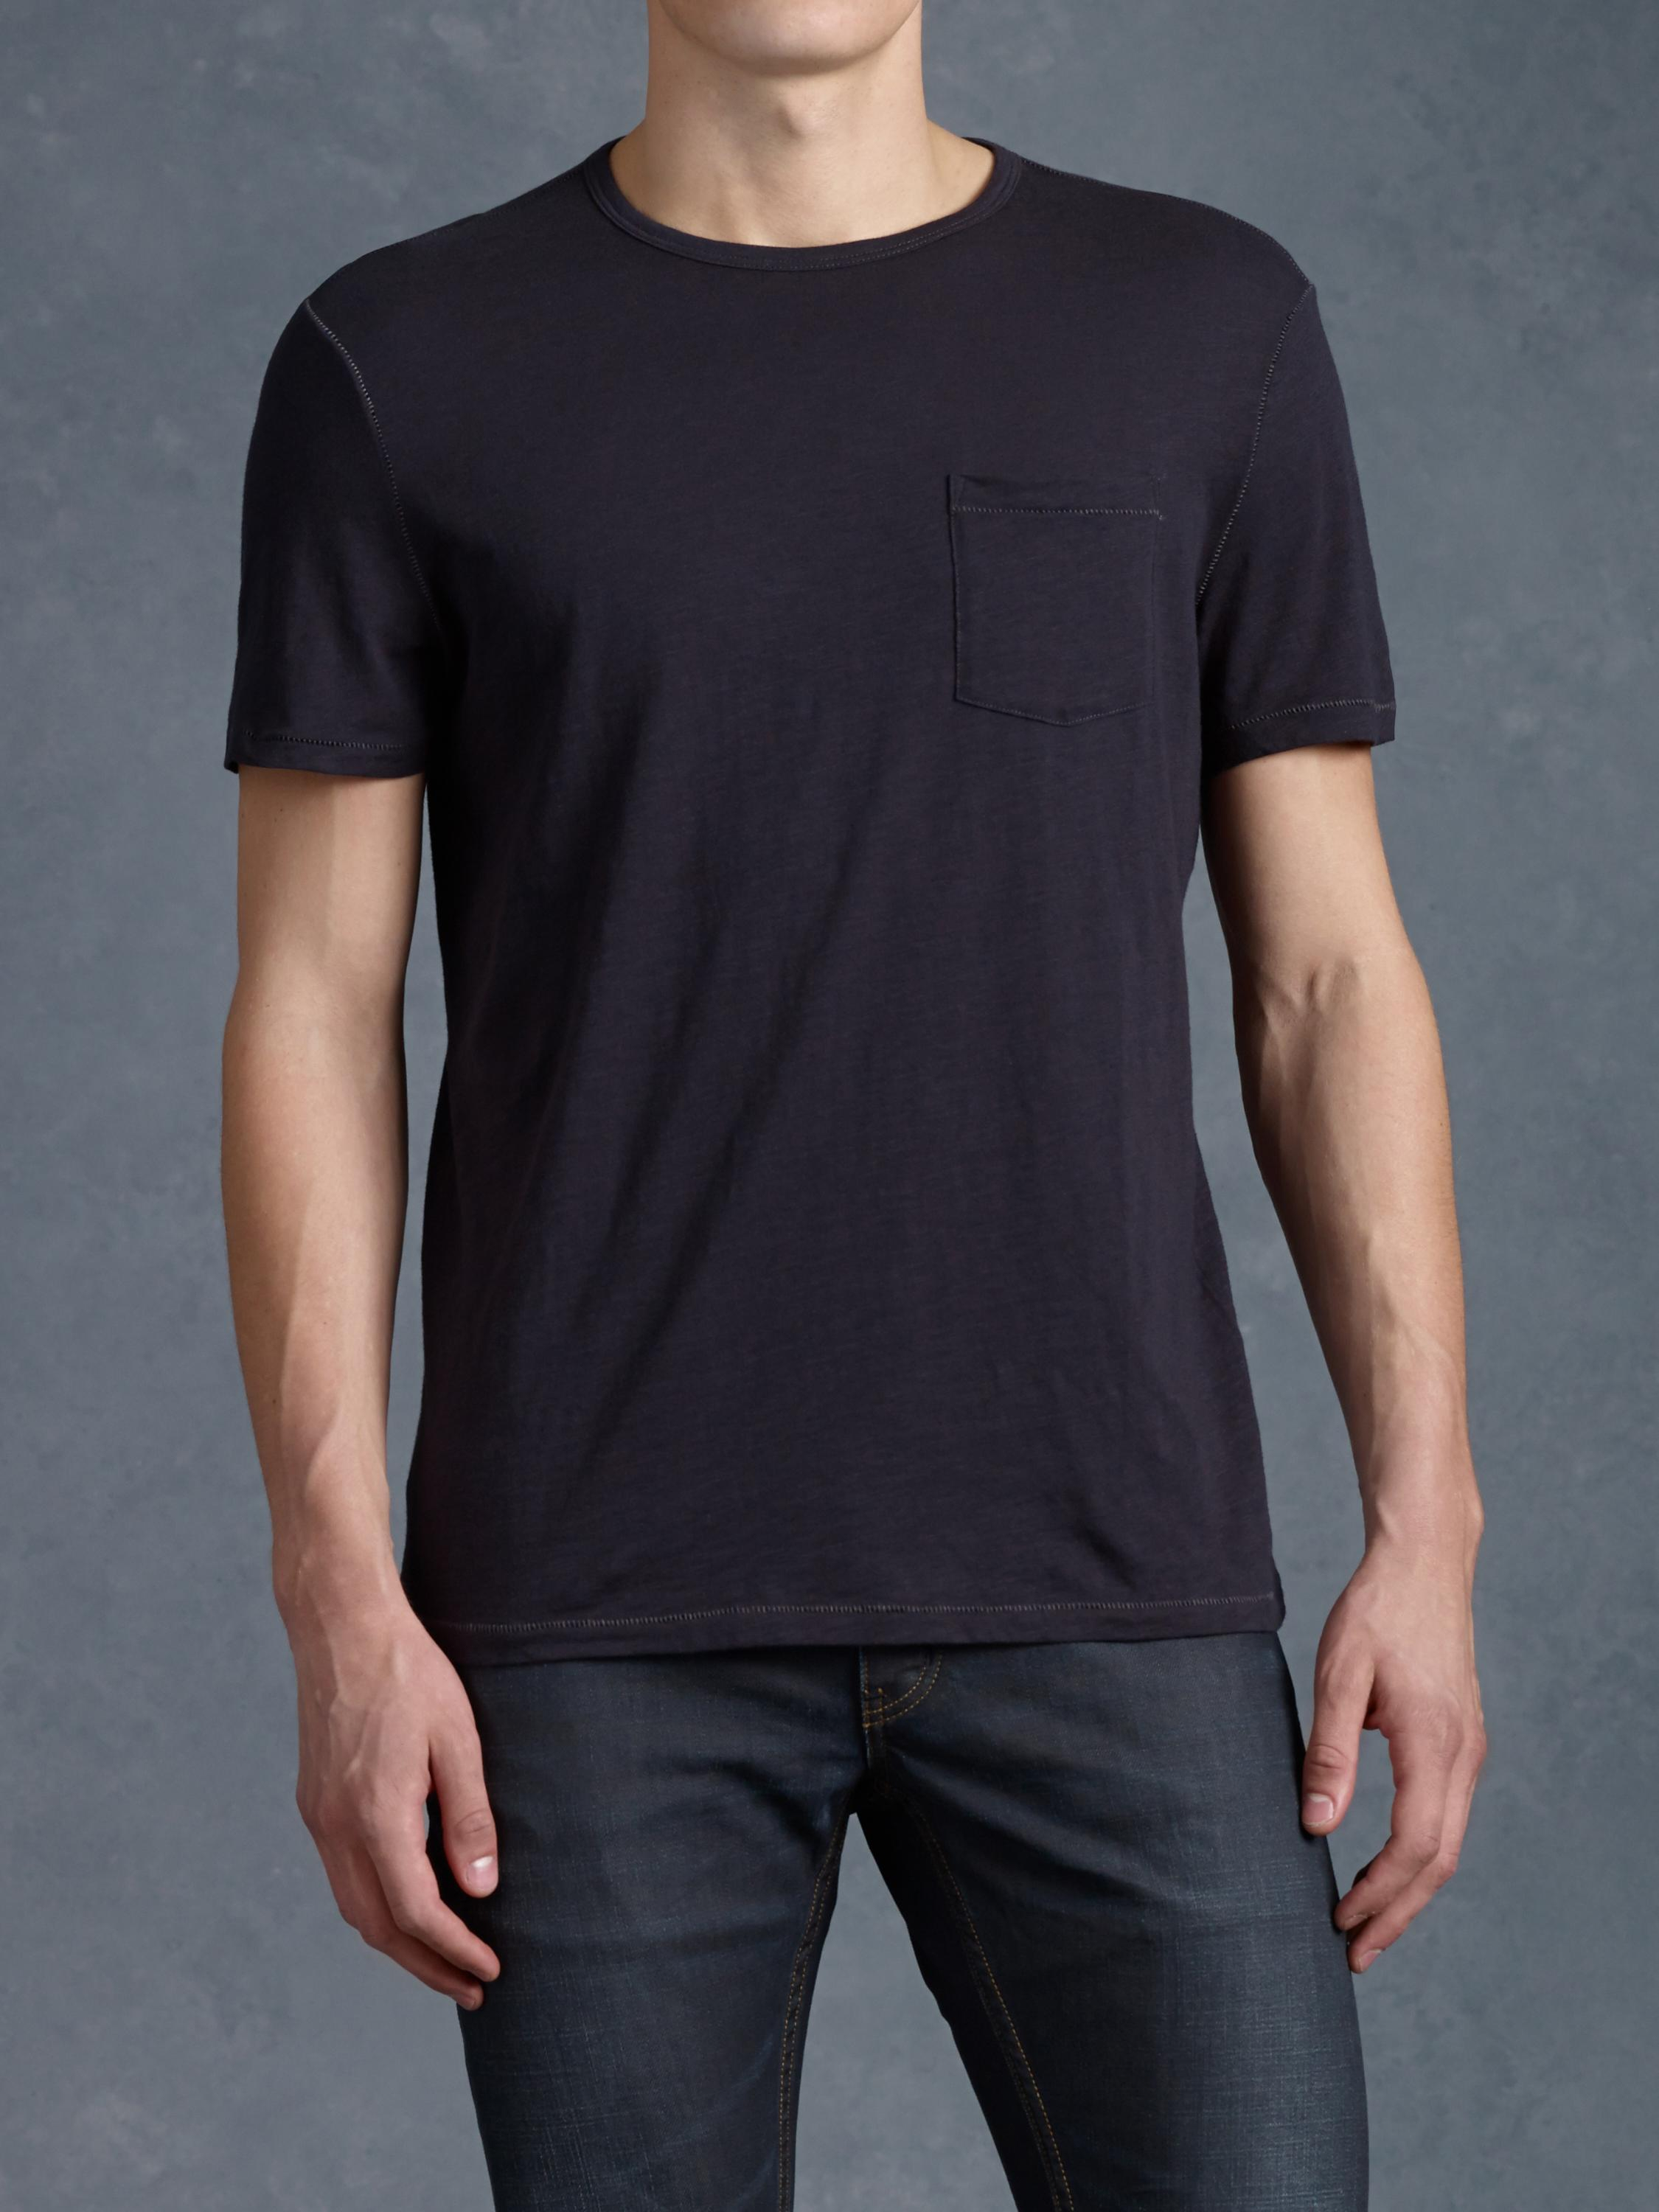 Where can i buy these t shirt blanks wholesale t shirt for Where can i buy t shirts in bulk for cheap